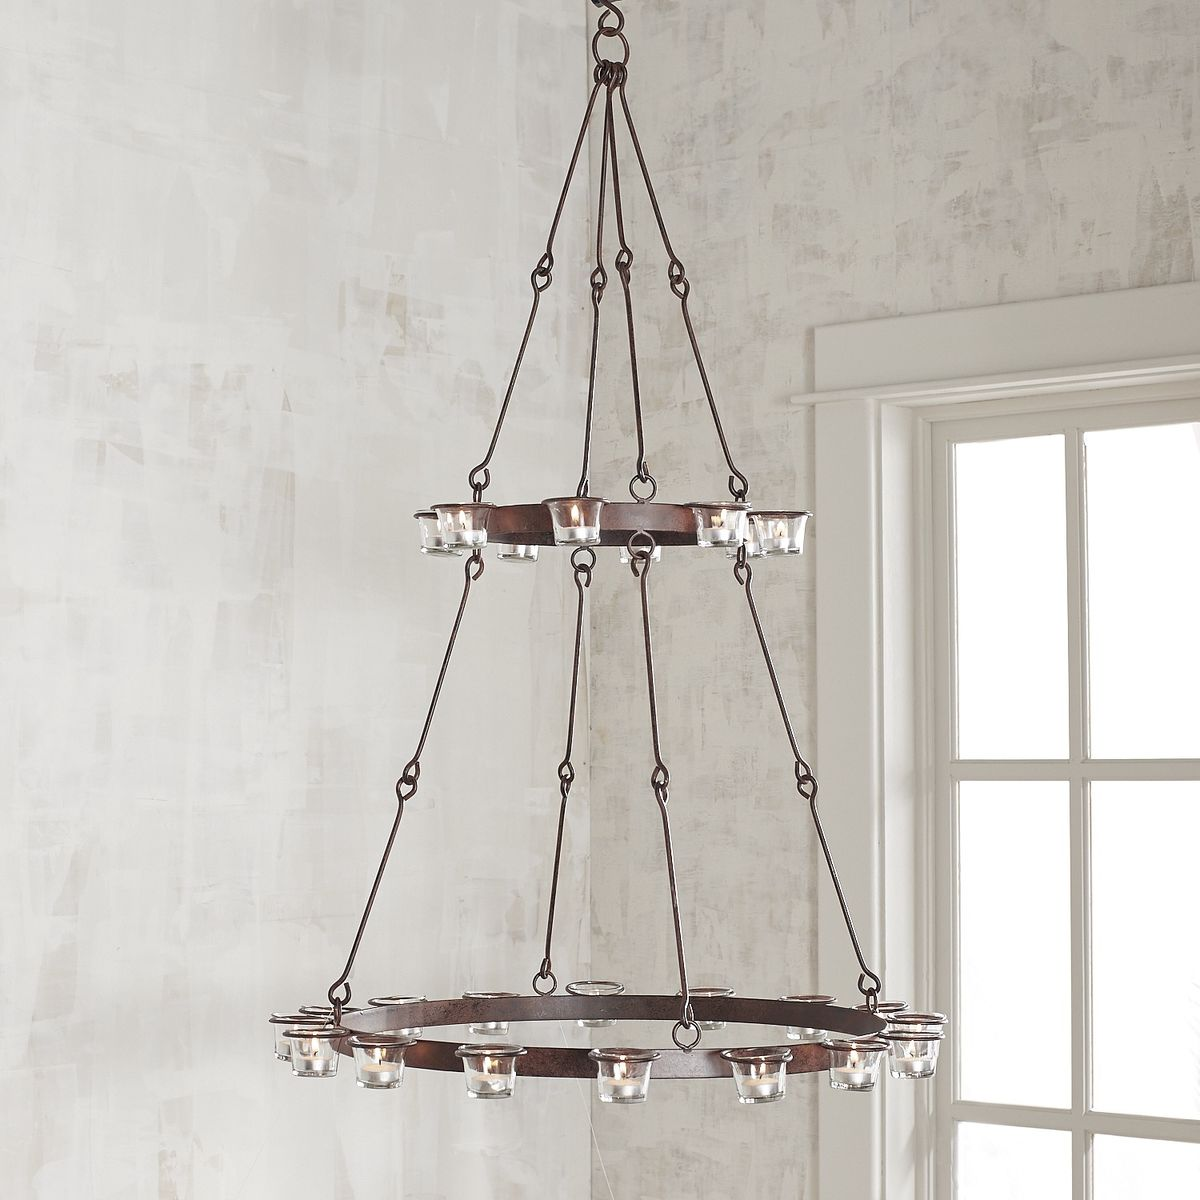 12 hanging candle chandeliers you can buy or diy view in gallery arubaitofo Choice Image